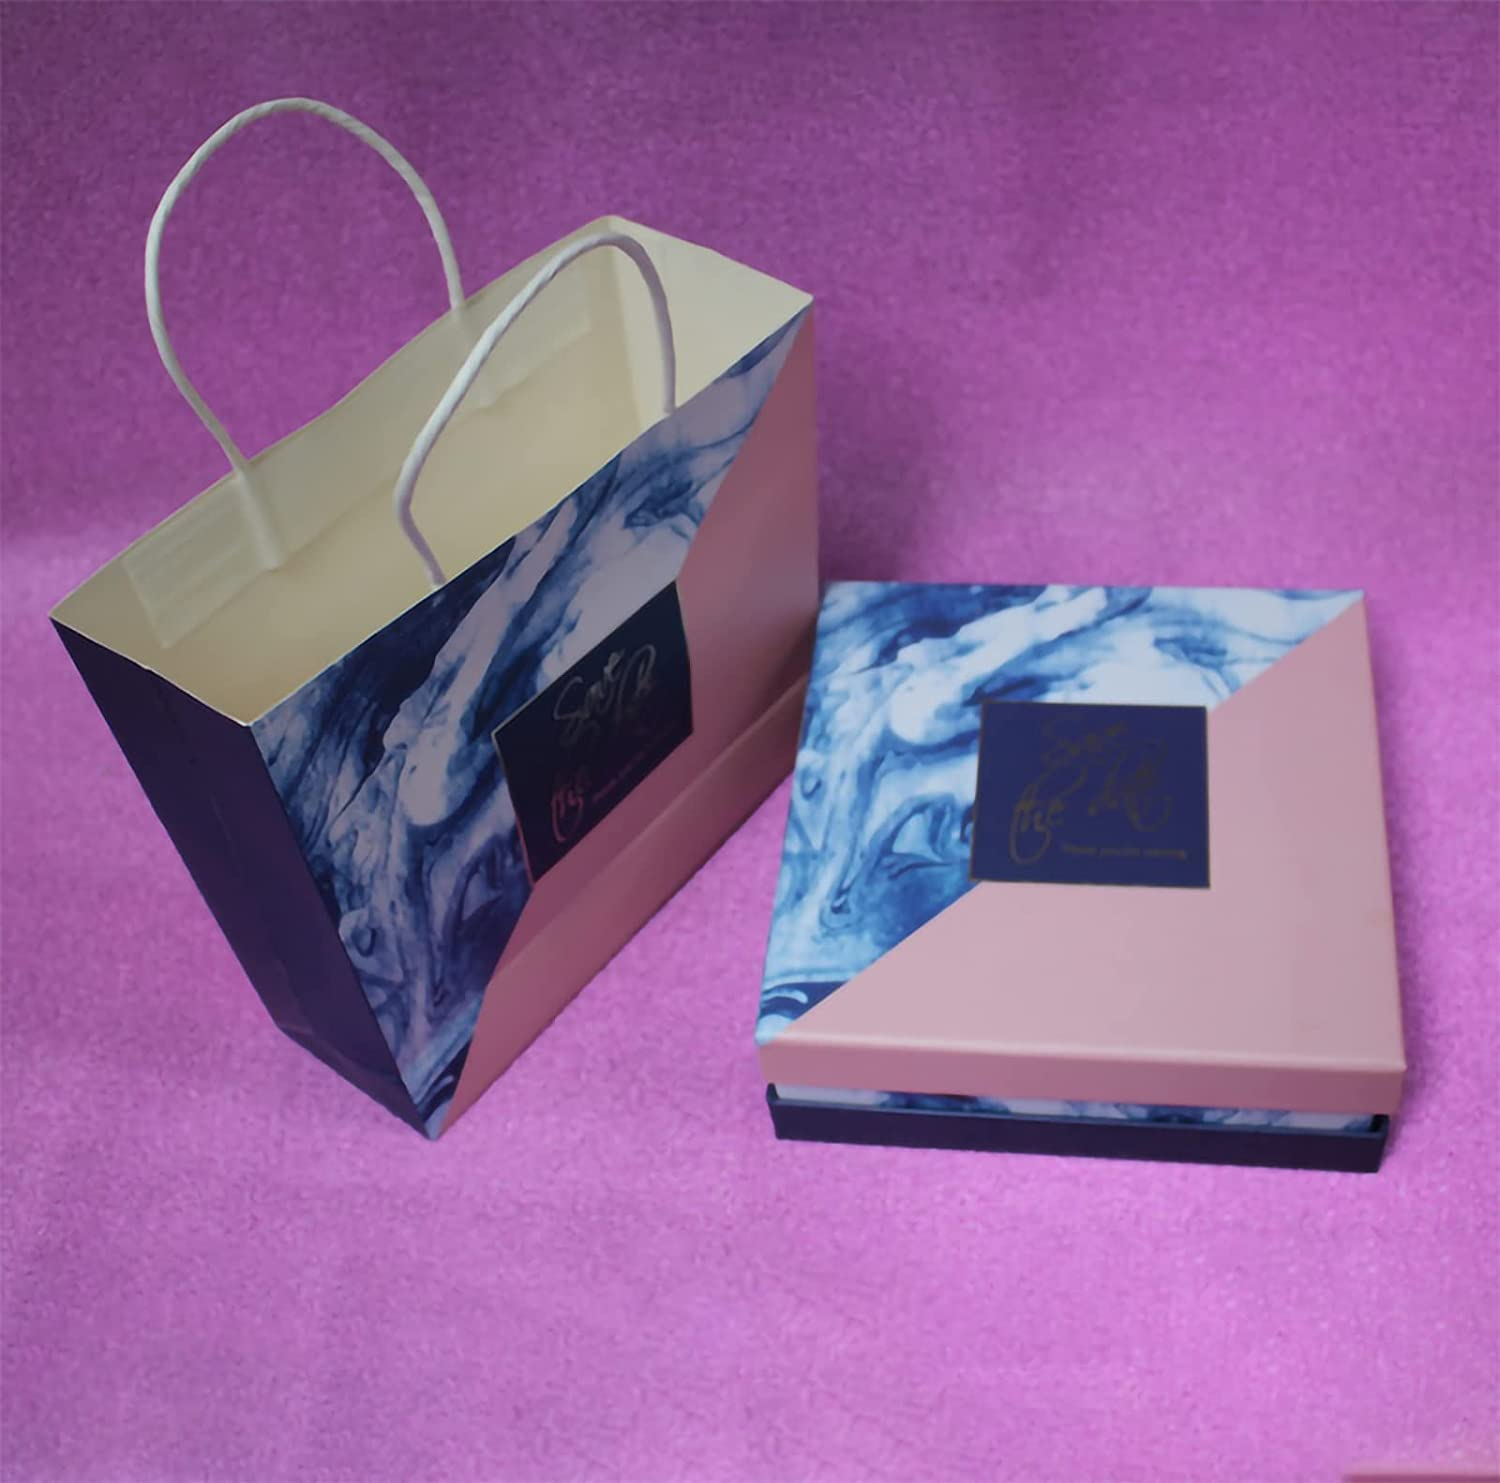 xzyq All items free shipping Creative Hand Gift Wedding Candy Box mart and Cover Earth Heaven